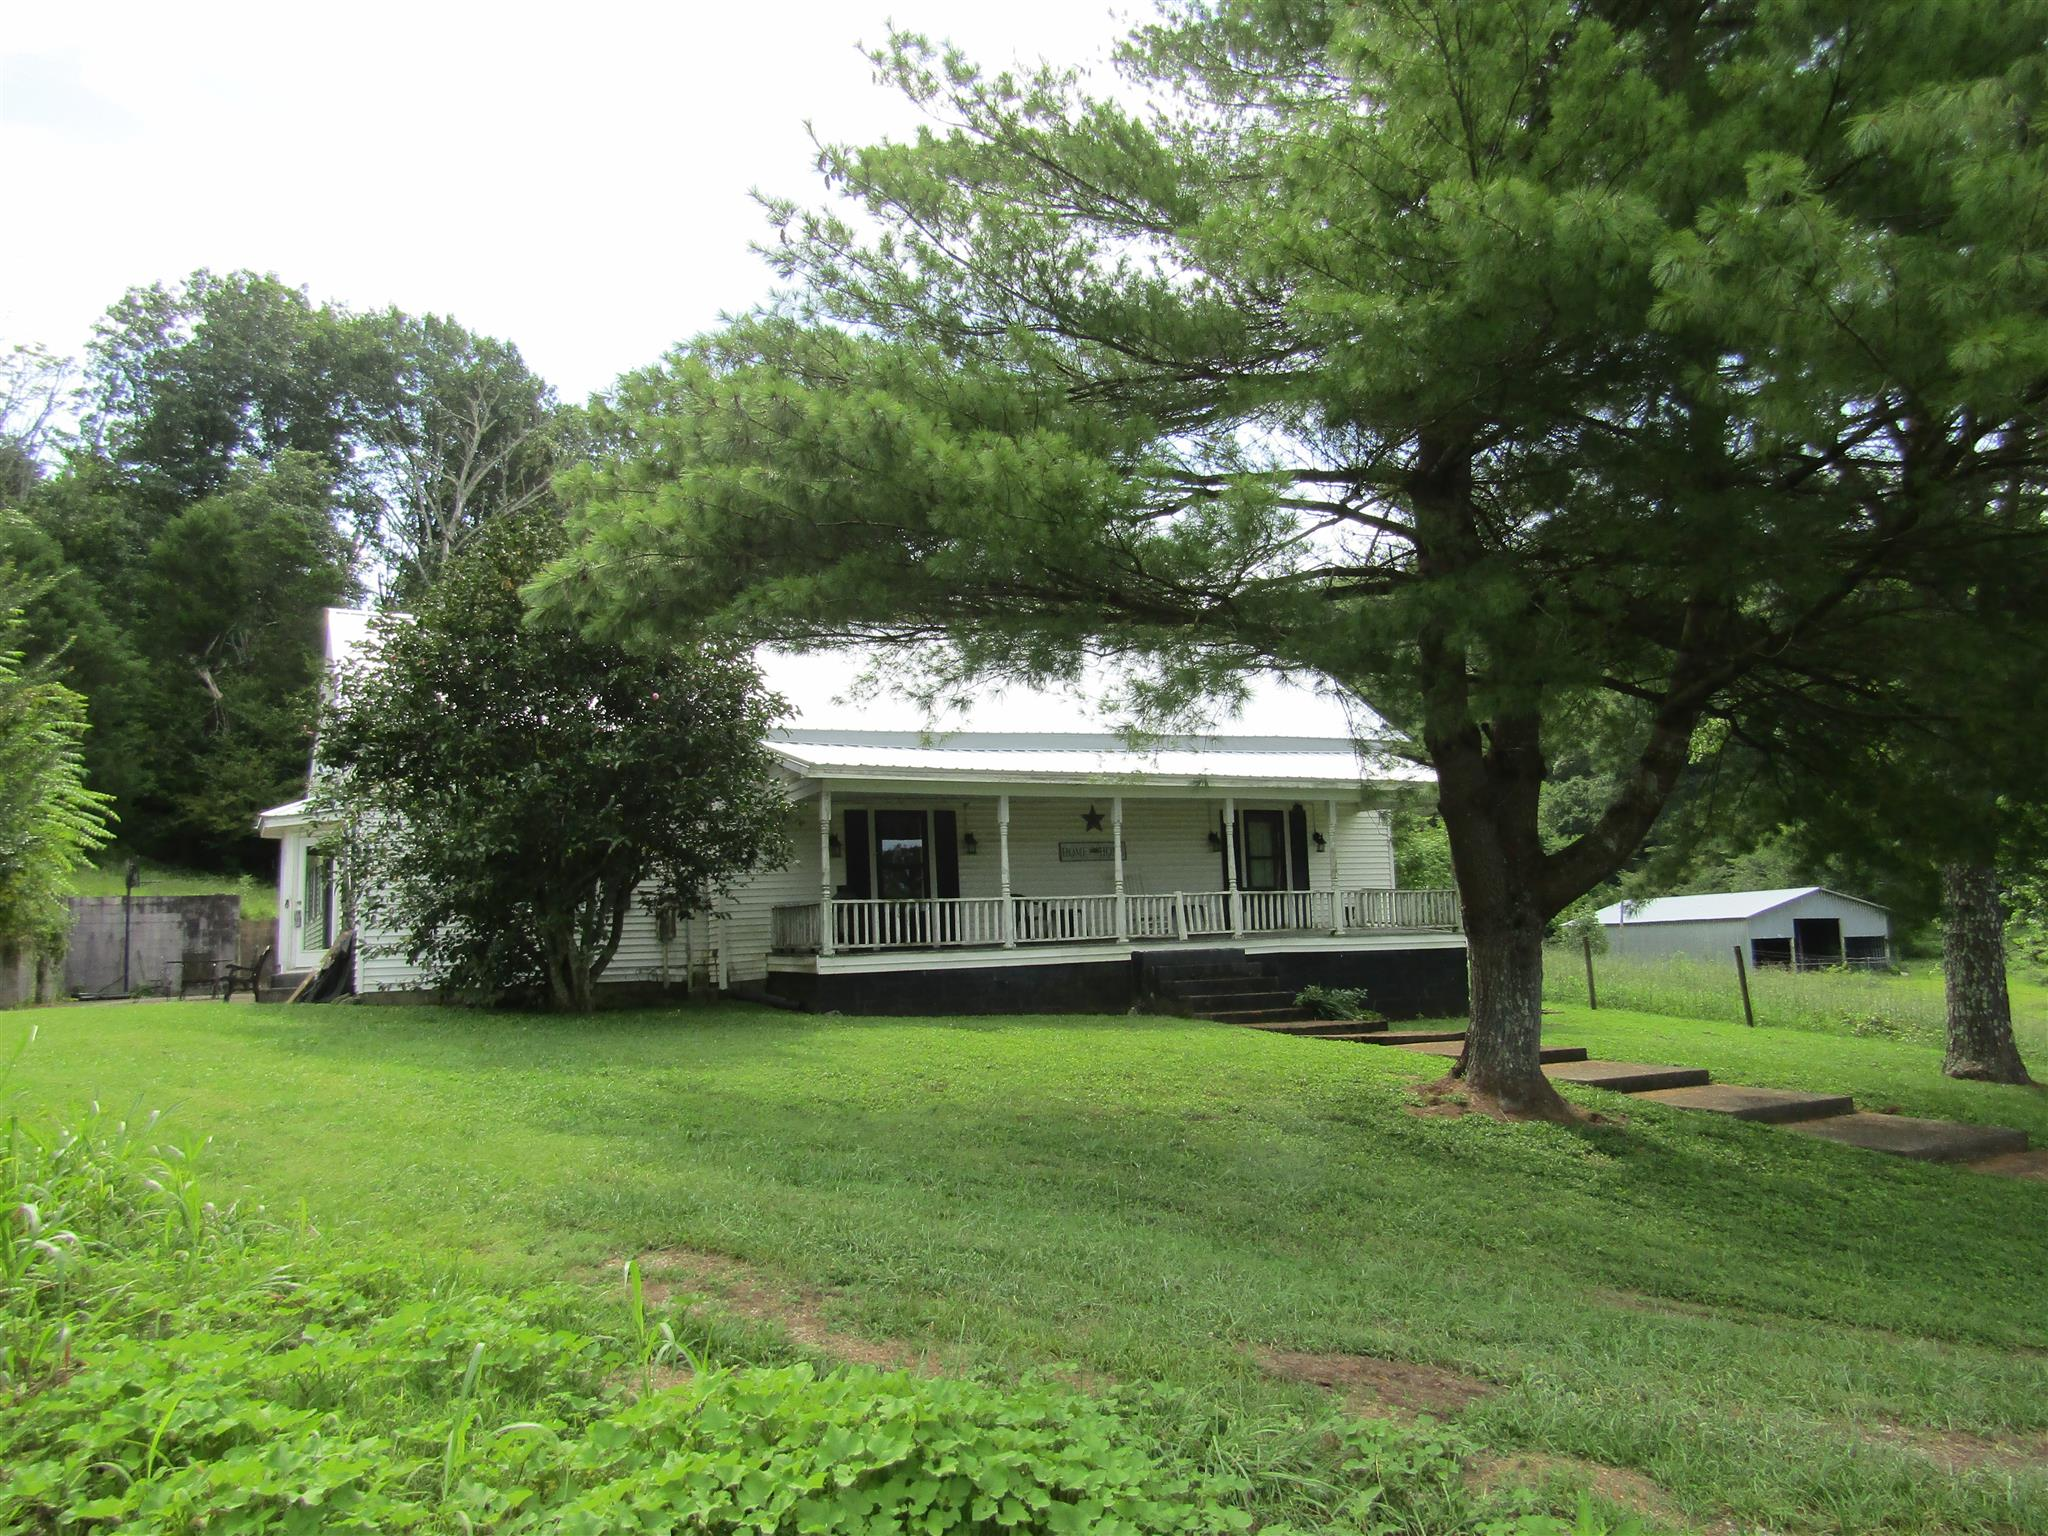 2701 Yell Rd, Lewisburg, TN 37091 - Lewisburg, TN real estate listing